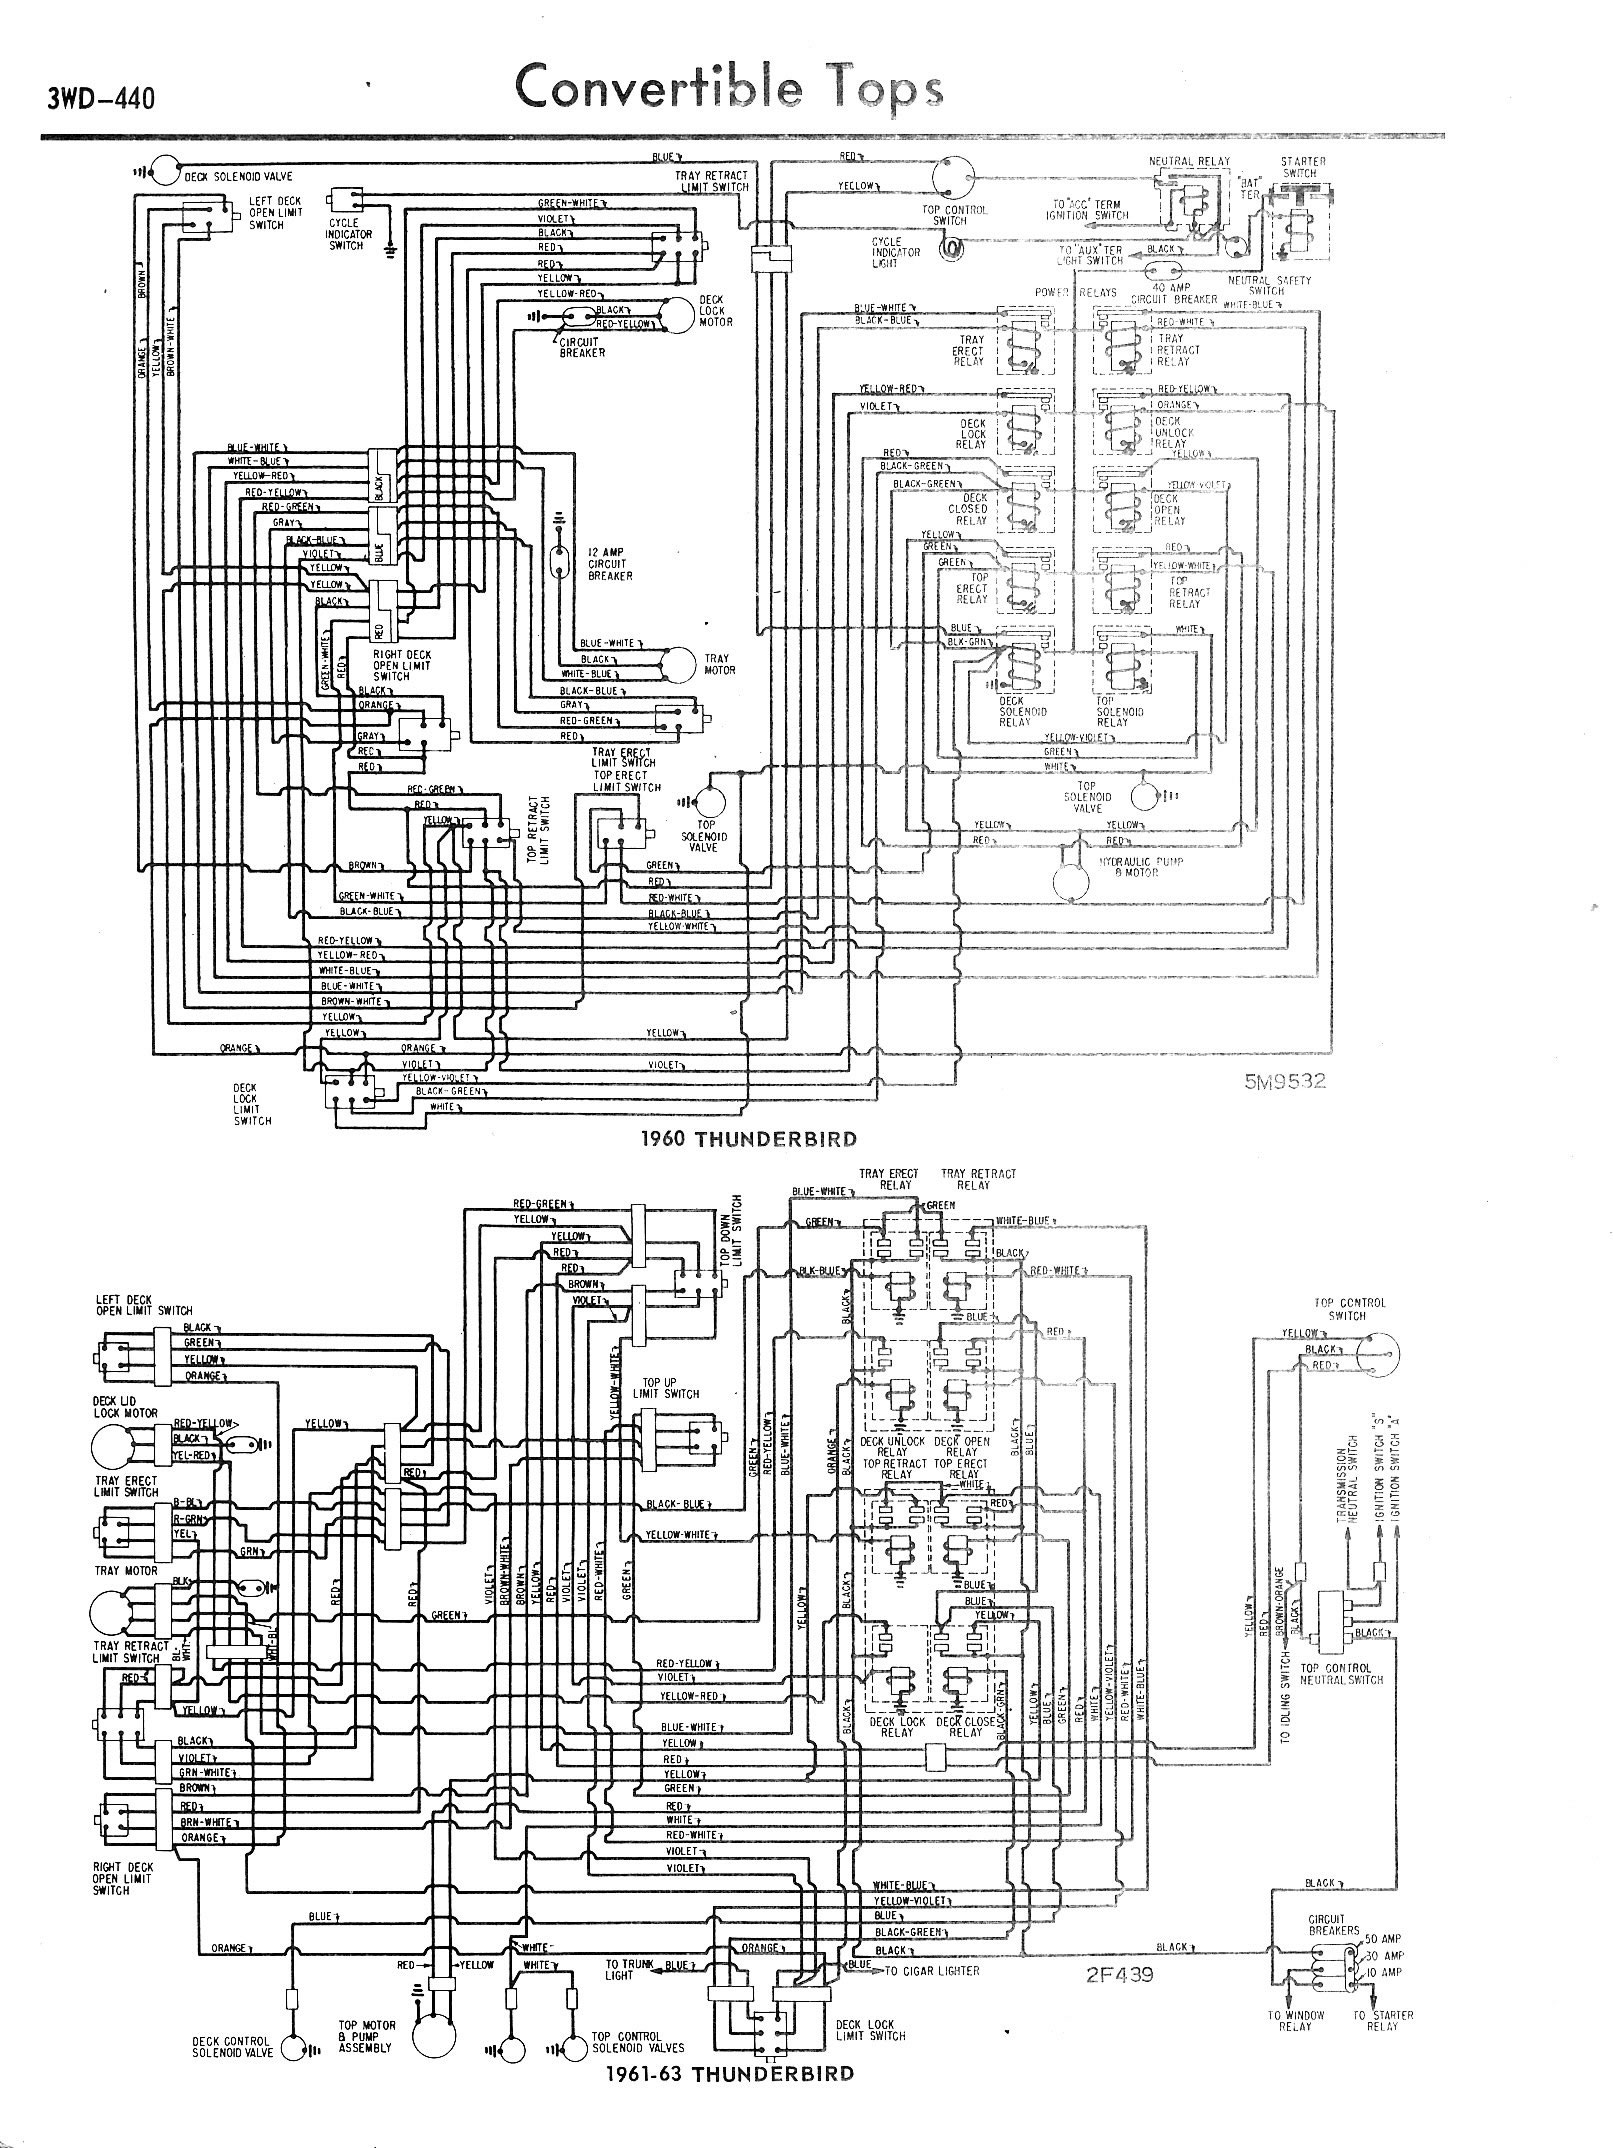 Top Of Engine Wiring 91 Ford Thunderbird Opinions About Gibson B Diagram Diagrams Rh Wizard Com